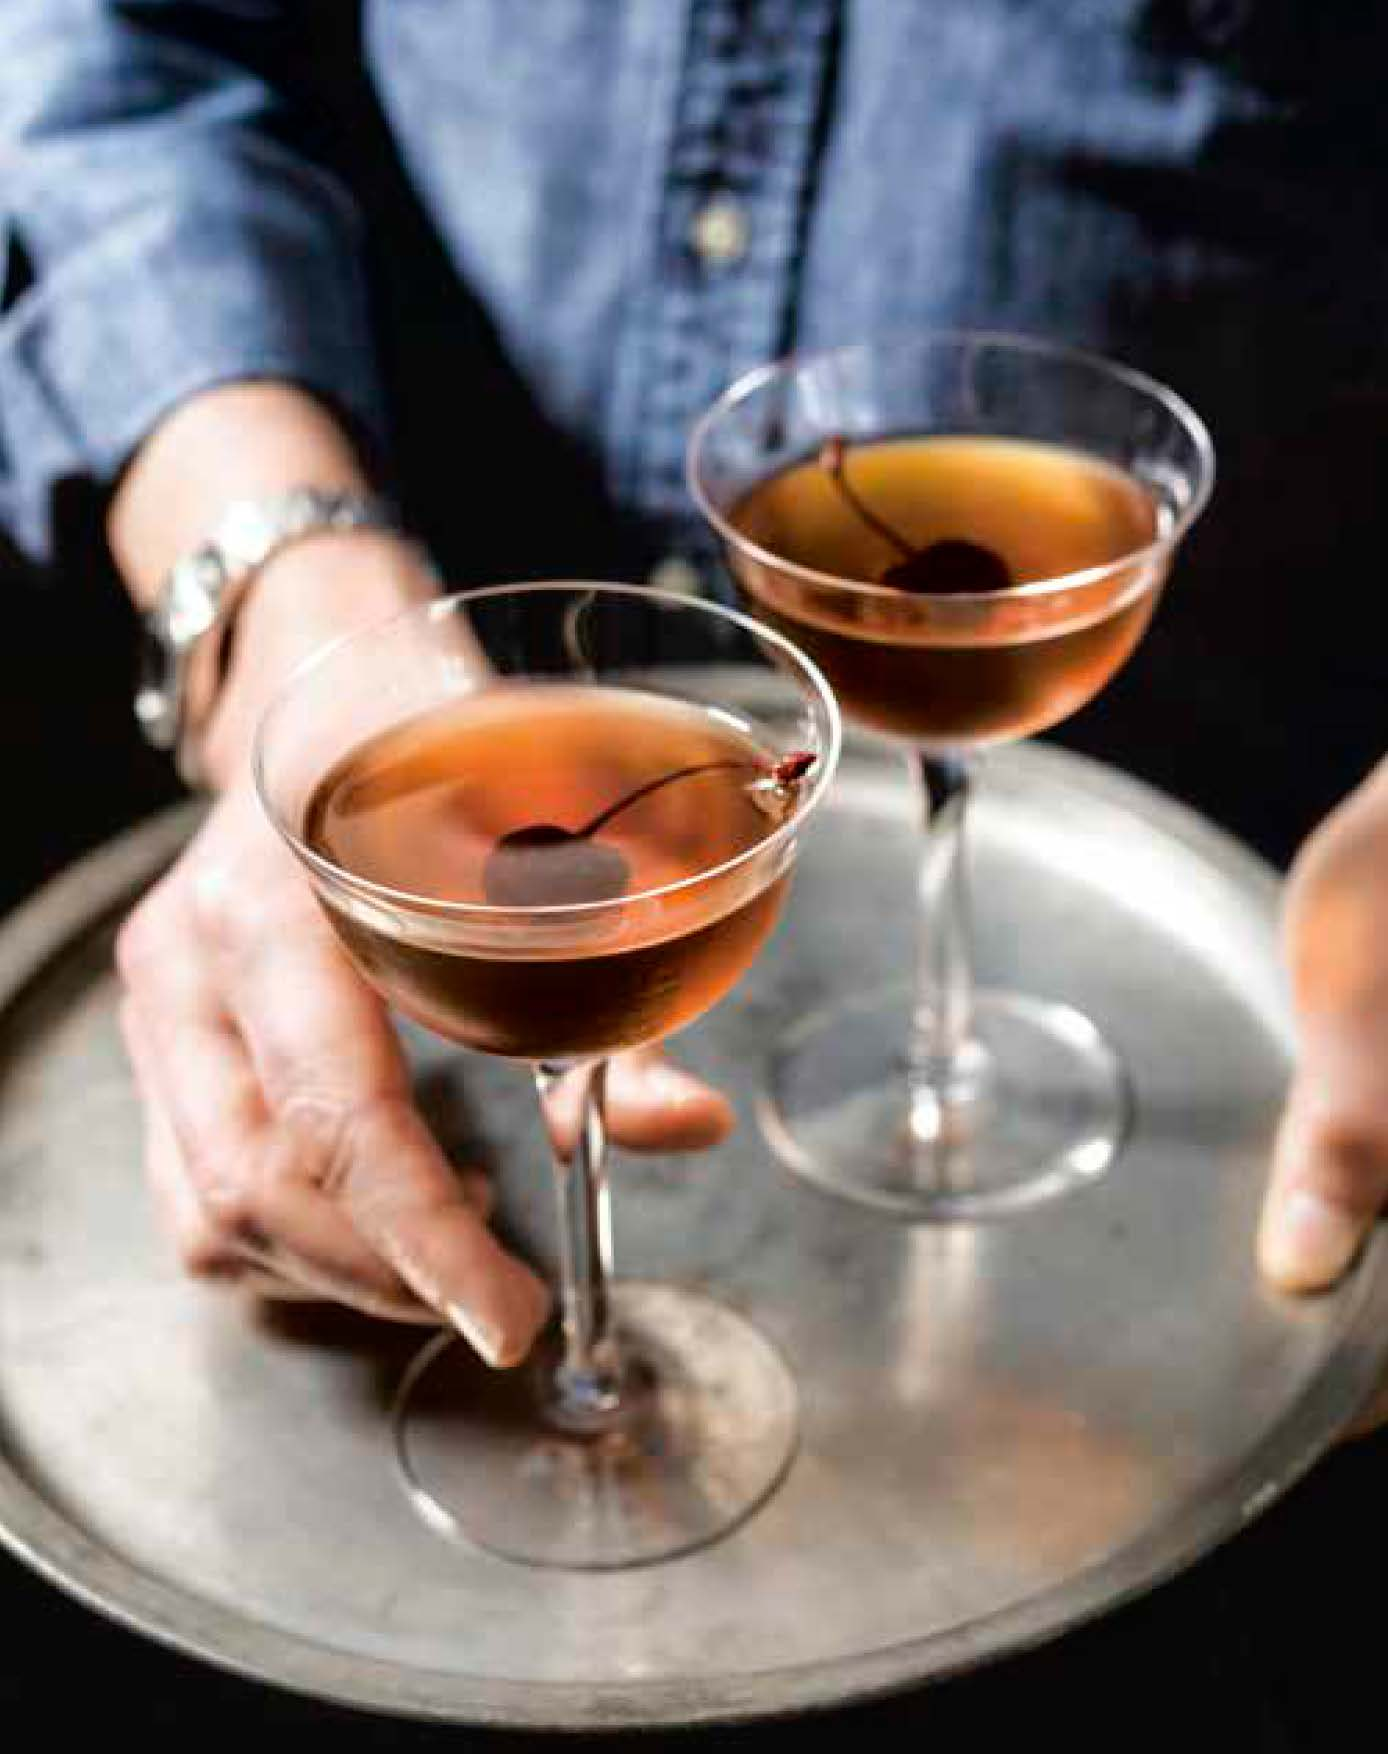 A French take on the classic with cognac, orange liqueur and sweet vermouth. From Drinking French: The iconic cocktails, apéritifs, and café traditions of France, with 160 recipes (Ten Speed Press)